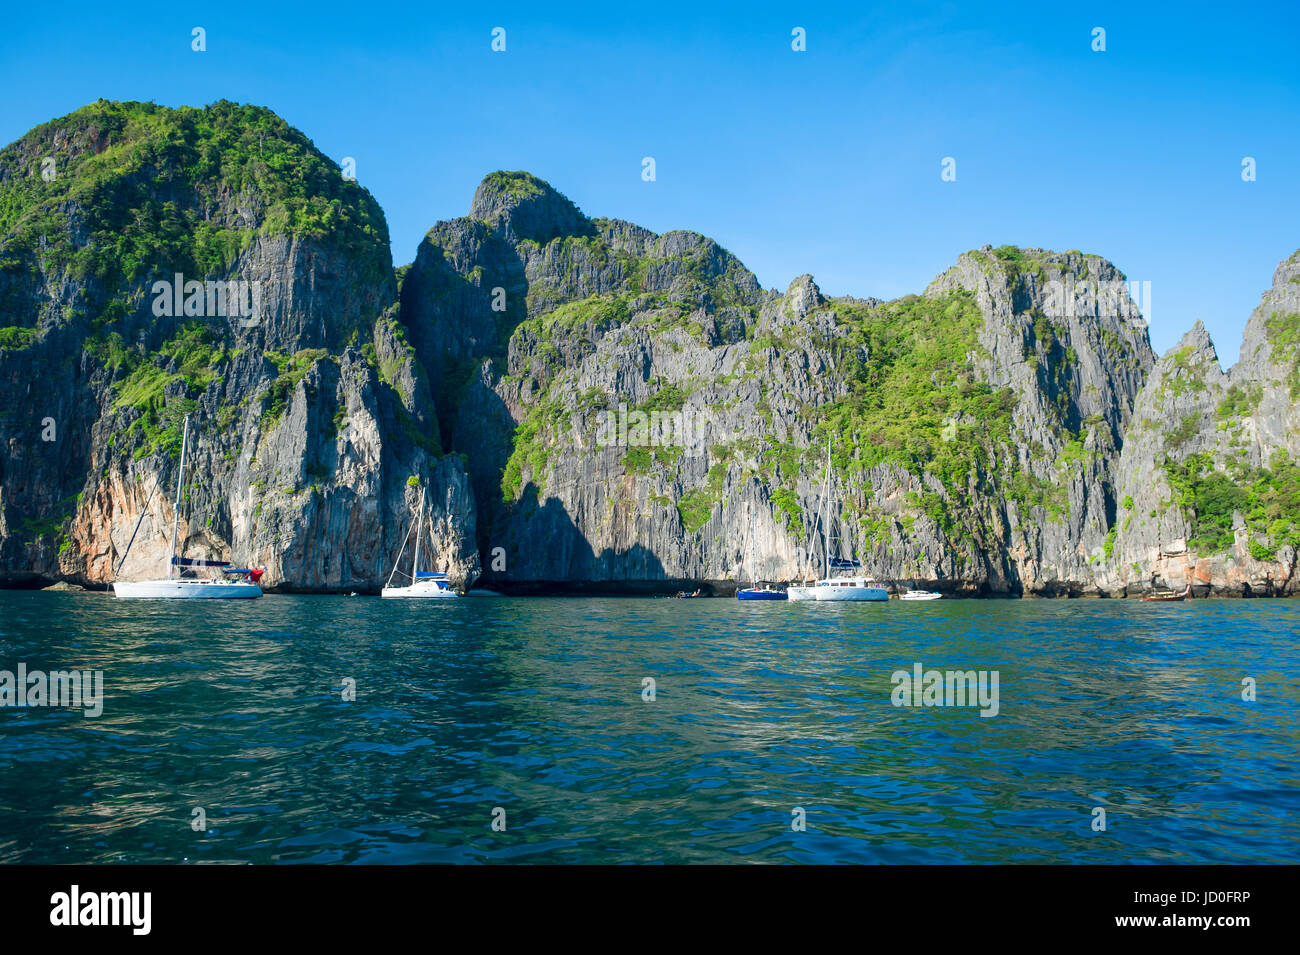 Koh Phi Phi island in Krabi Thailand features distinctive dramatic geography of limestone karst mountains and cliffs Stock Photo